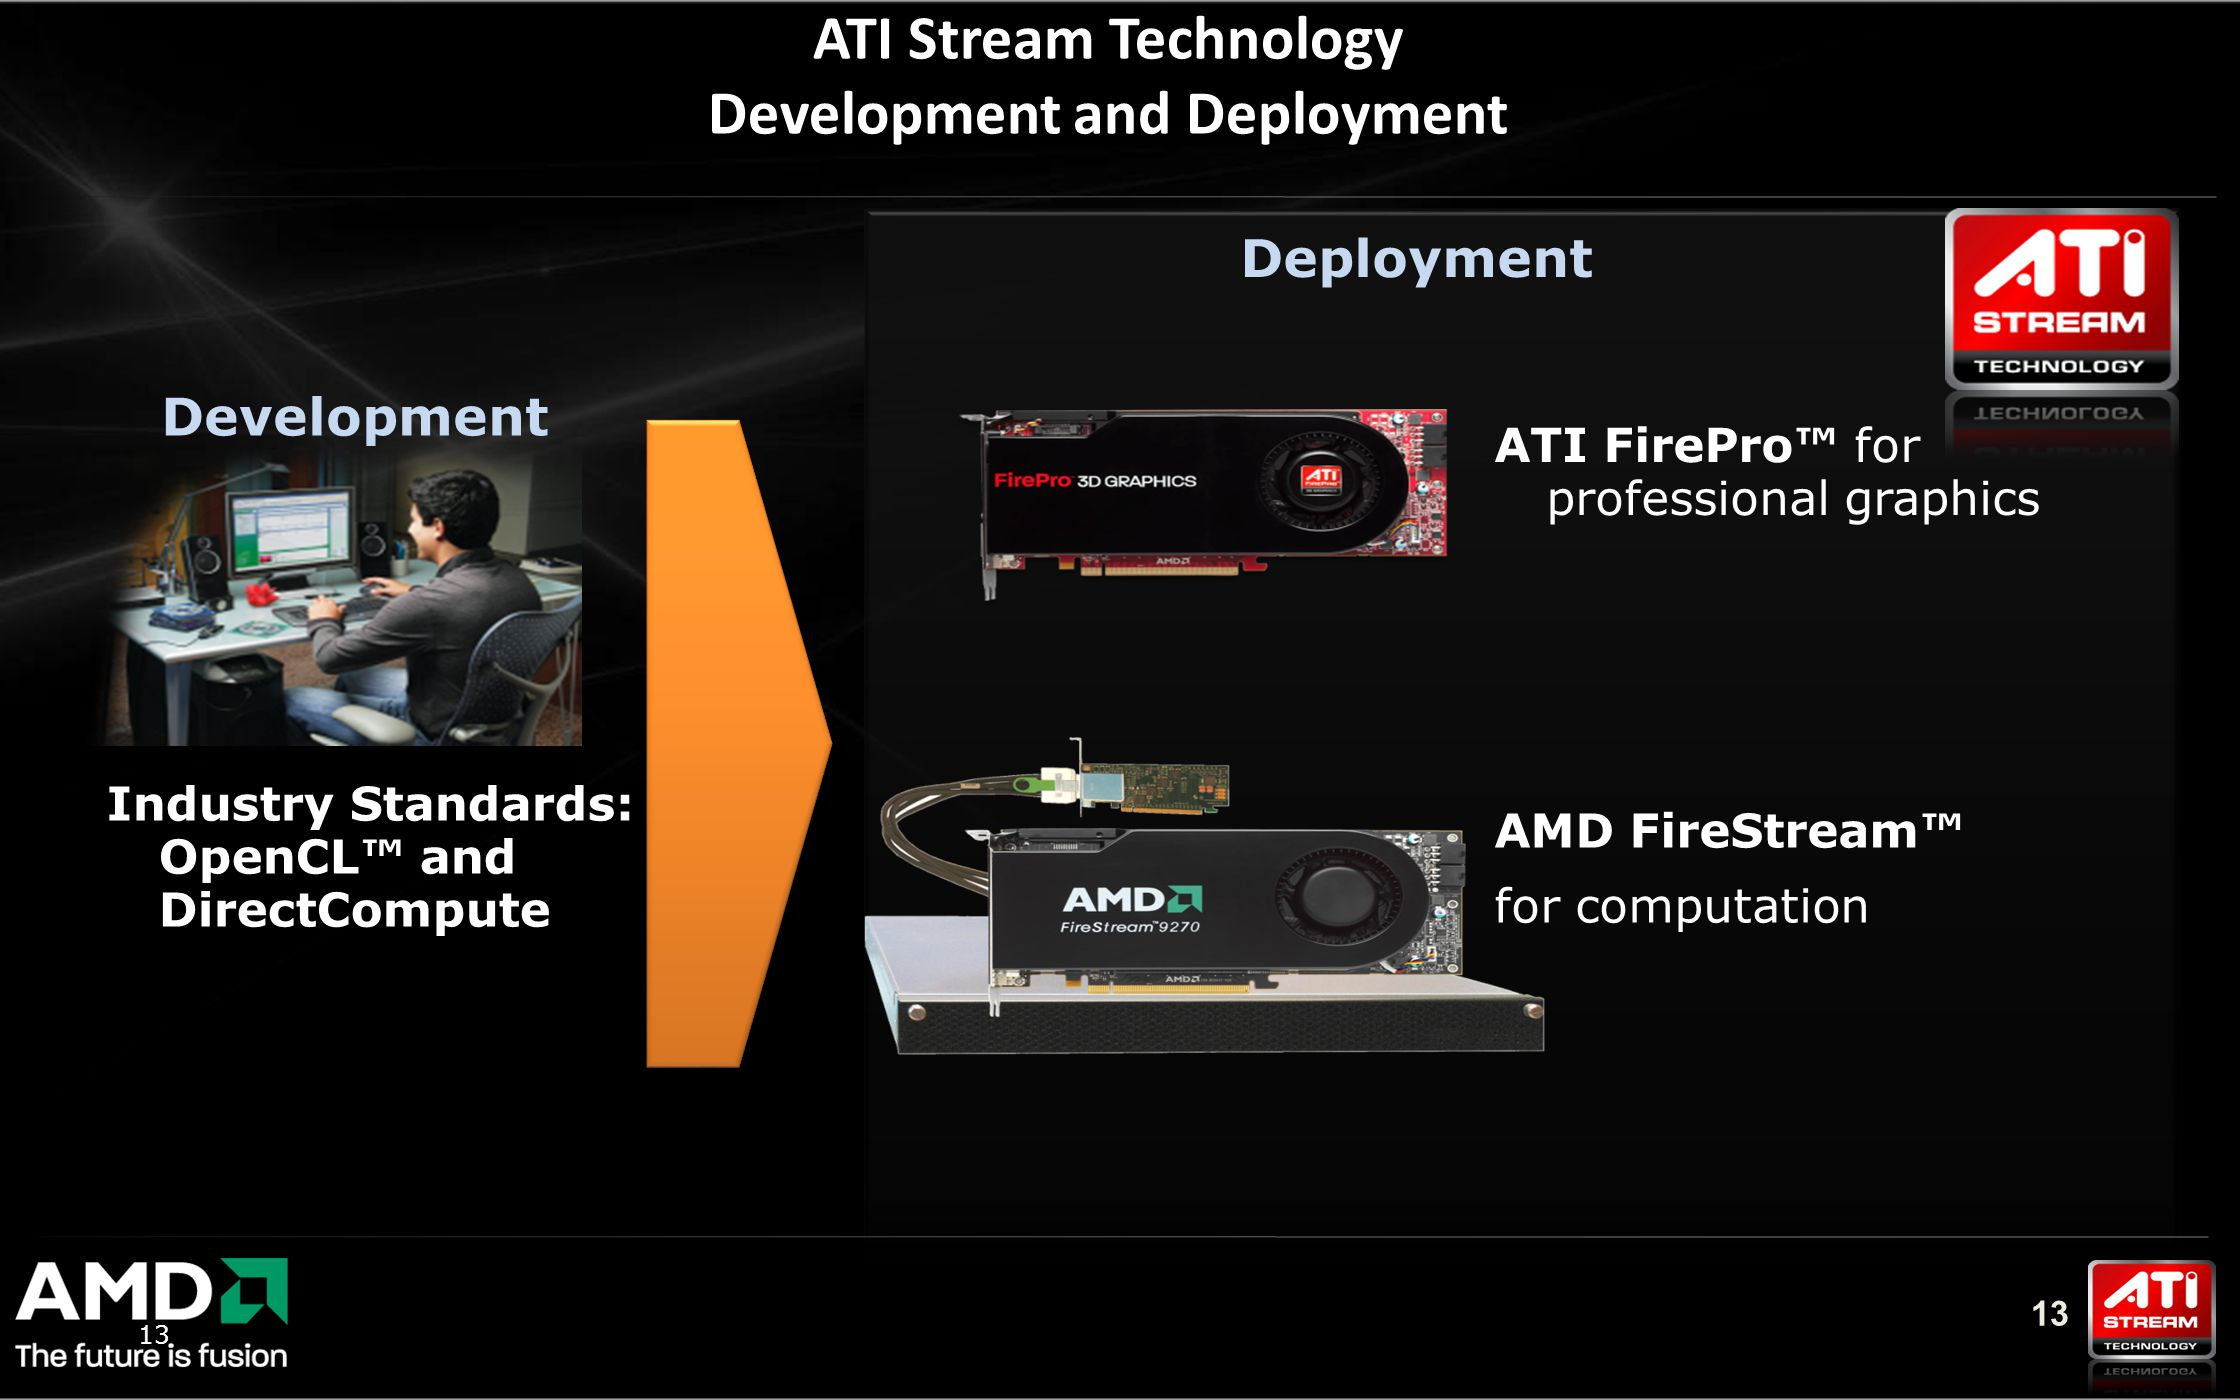 13 Development ATI Stream Technology Development and Deployment Industry Standards: OpenCL™ and DirectCompute Deployment ATI FirePro™ for professional graphics AMD FireStream™ for computation